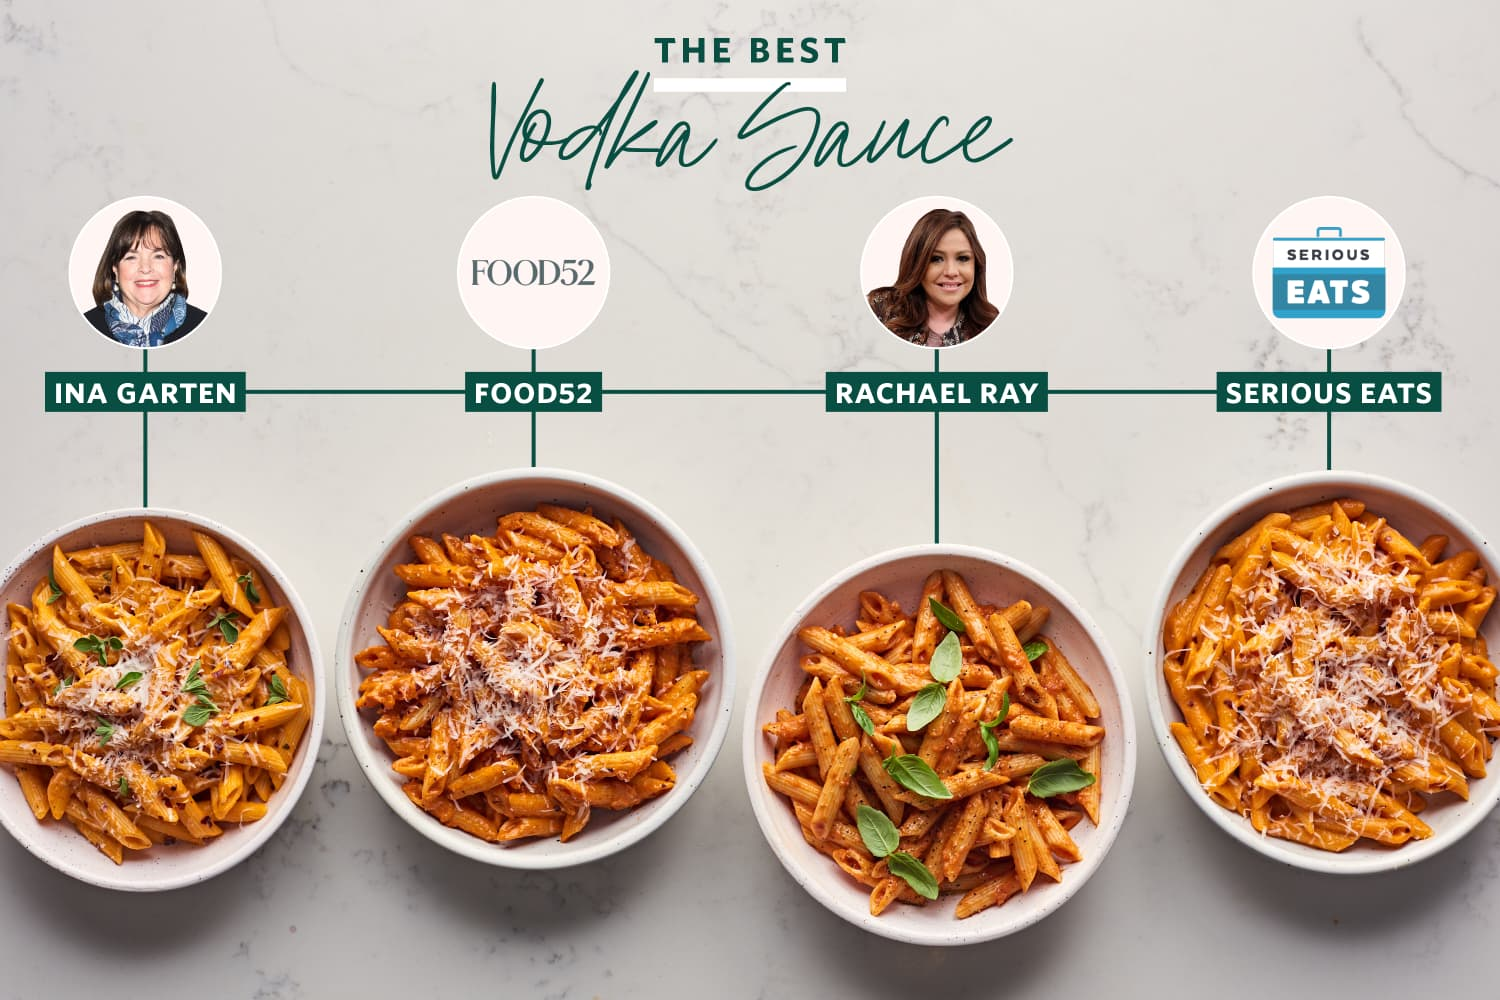 I Tried 4 Popular Vodka Sauce Recipes and the Winner Transported Me to Italy